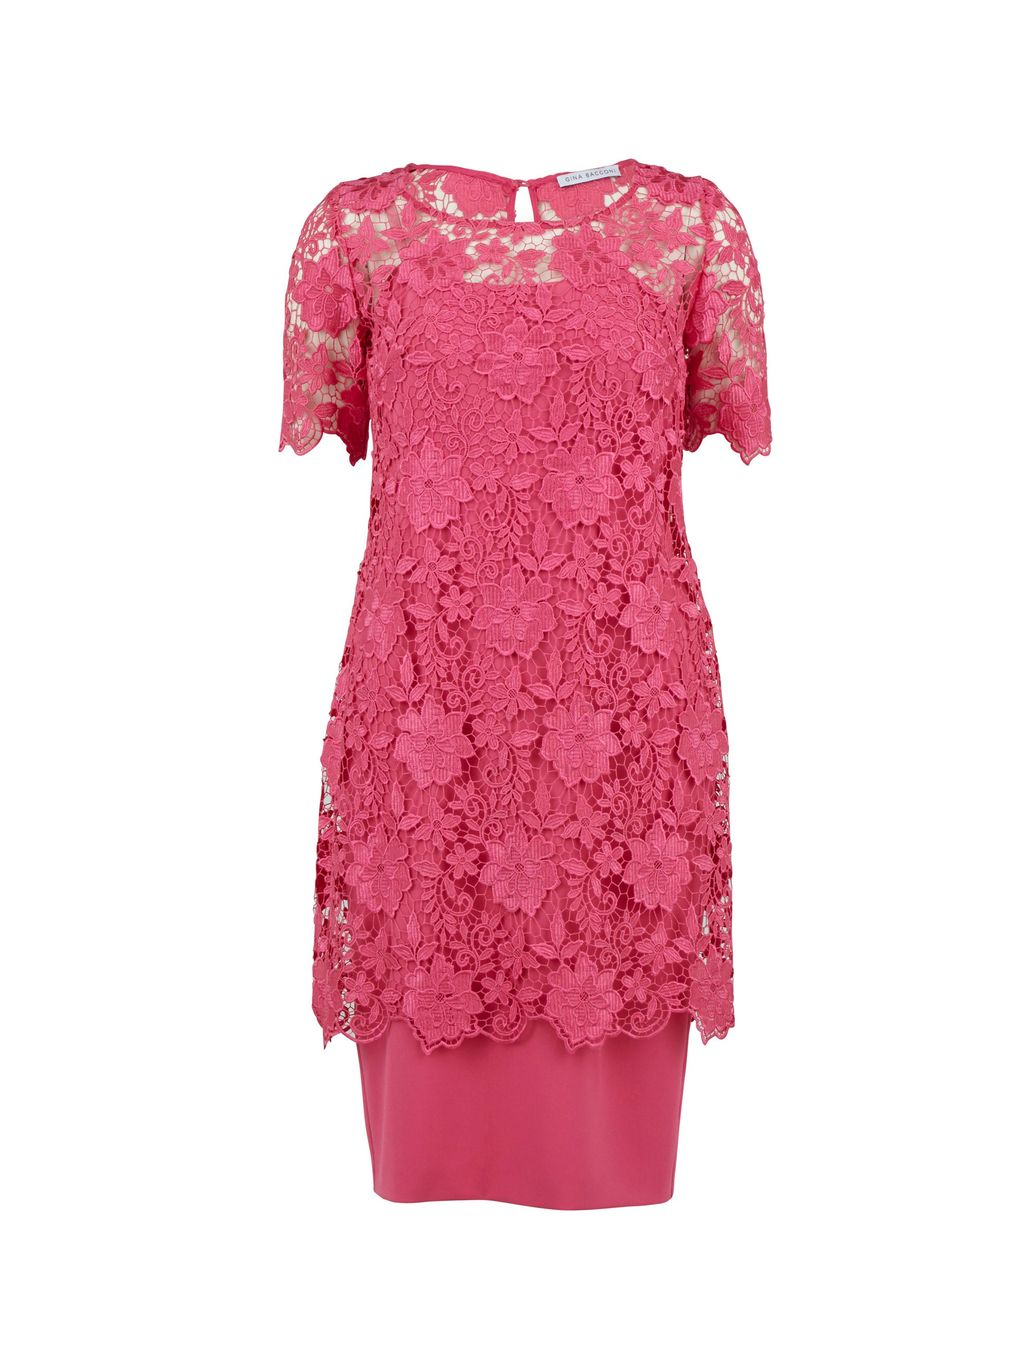 Guipure Half Sleeved Top Over Dress, Pink - style: shift; pattern: plain; bust detail: sheer at bust; predominant colour: pink; occasions: evening; length: just above the knee; fit: body skimming; fibres: polyester/polyamide - stretch; neckline: crew; sleeve length: short sleeve; sleeve style: standard; texture group: lace; pattern type: fabric; season: s/s 2016